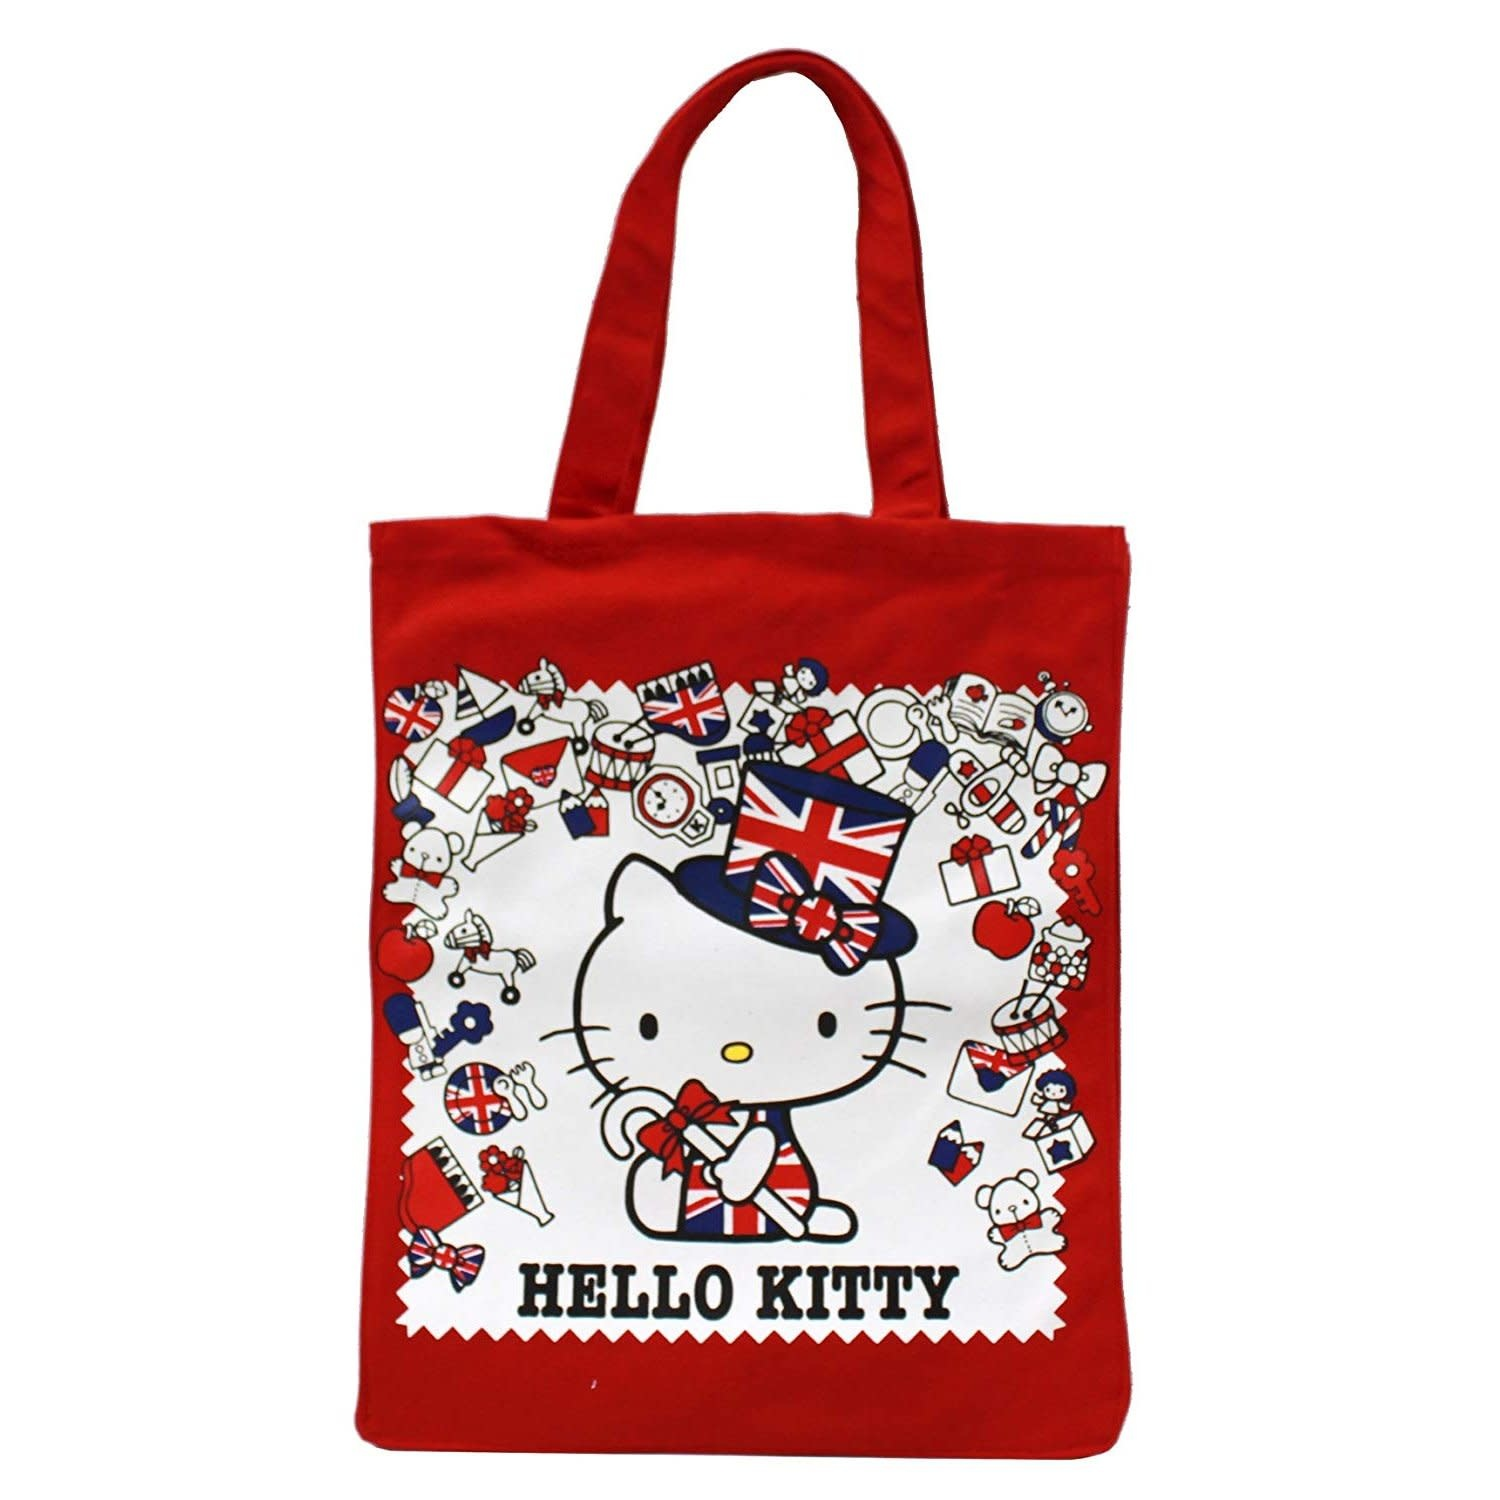 "Hello Kitty Union Jack 15"" Red Canvas Tote Bag"